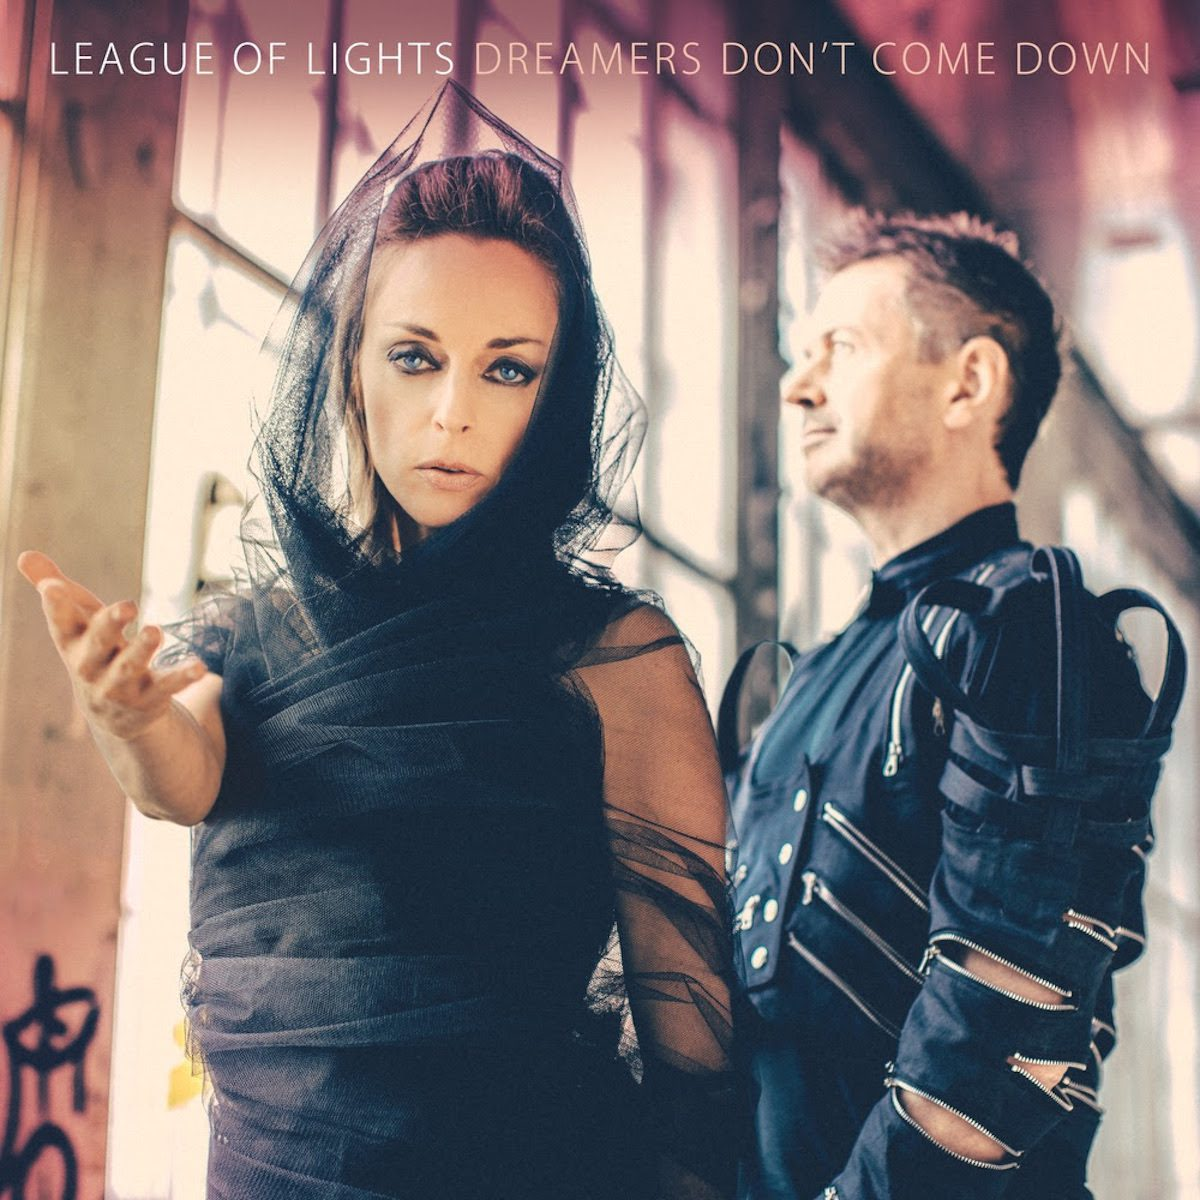 Electronic pop-rock duo League Of Lights release new single and video 'Modern Living' from the album 'Dreamers Don't Come Down'